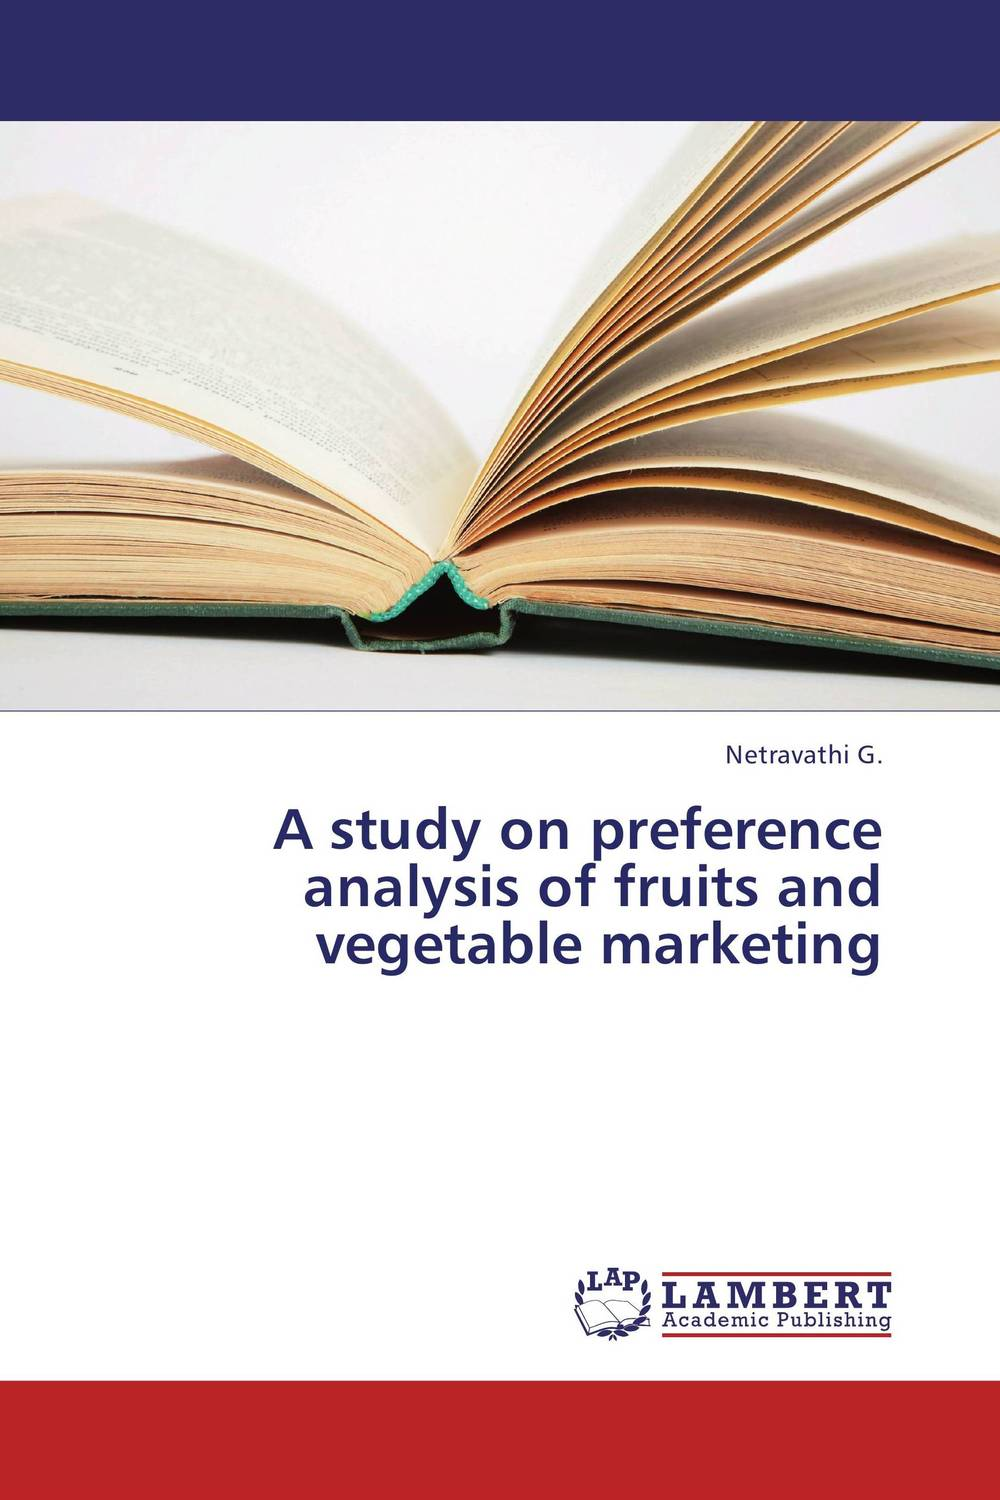 A study on preference analysis of fruits and vegetable marketing the book of greens